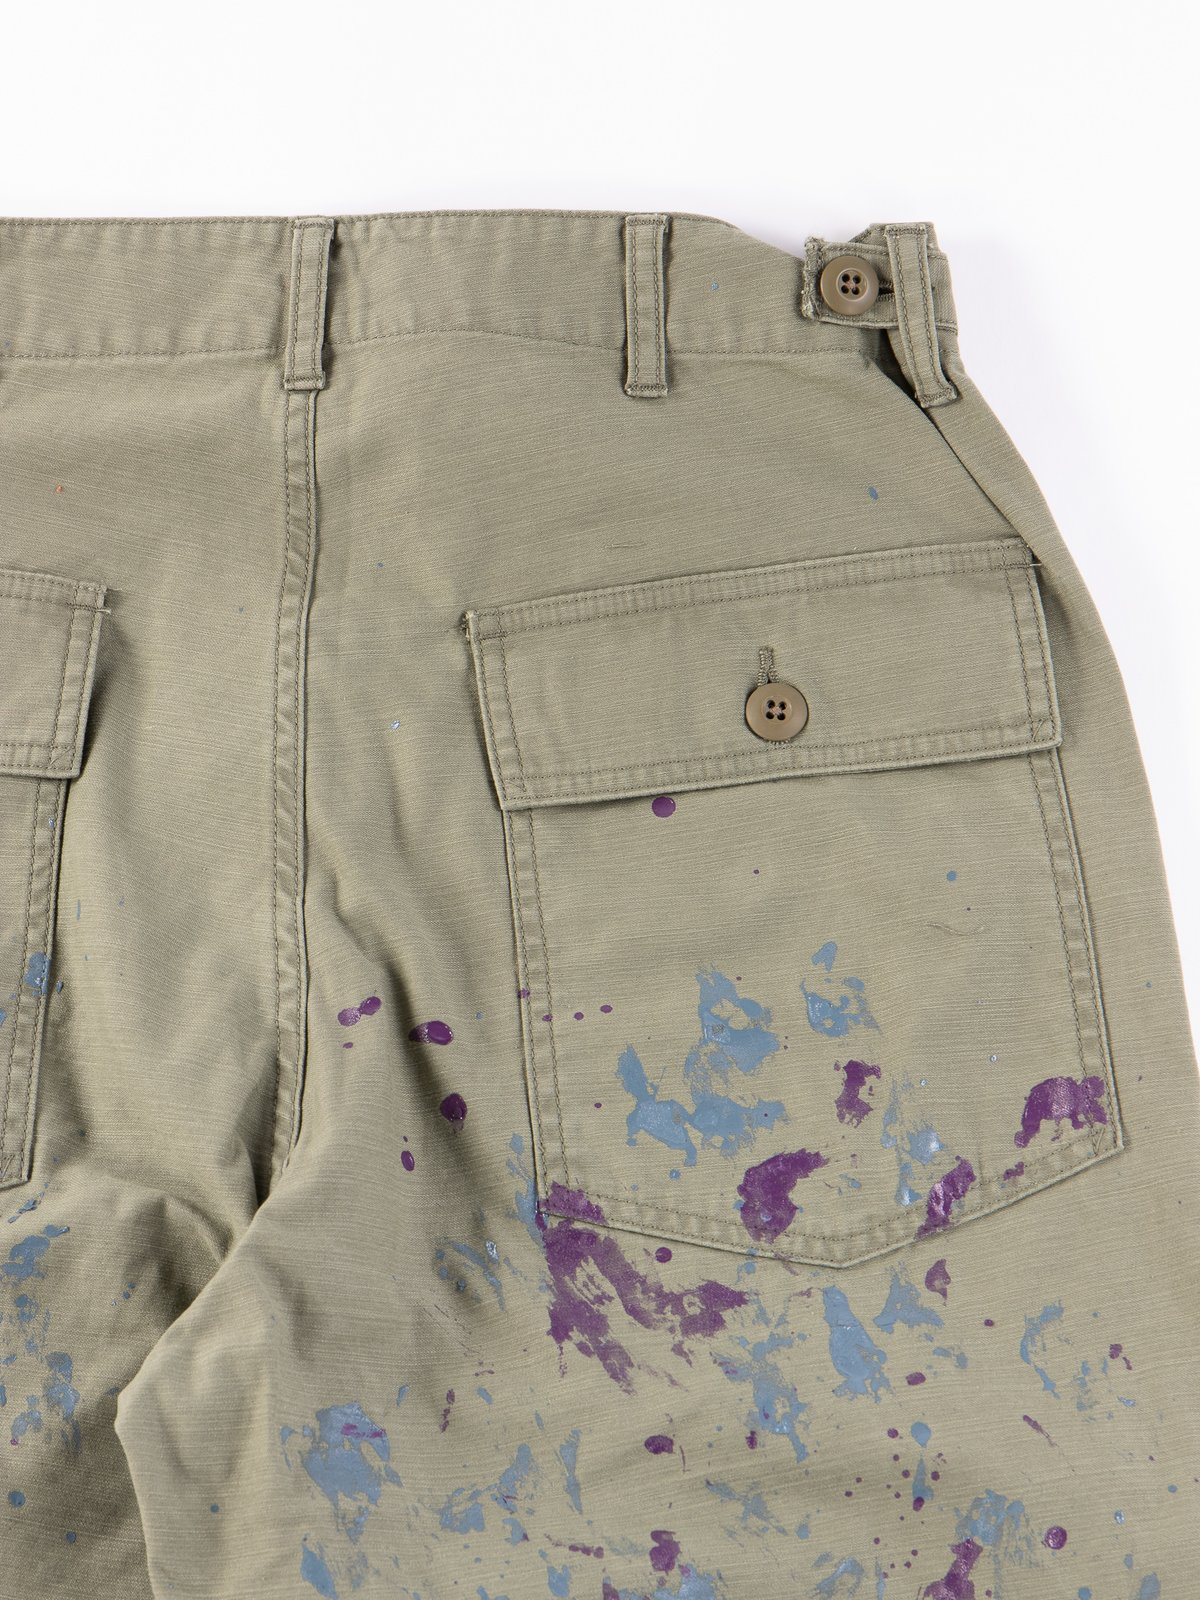 Olive Paint Sateen Fatigue Pant - Image 5